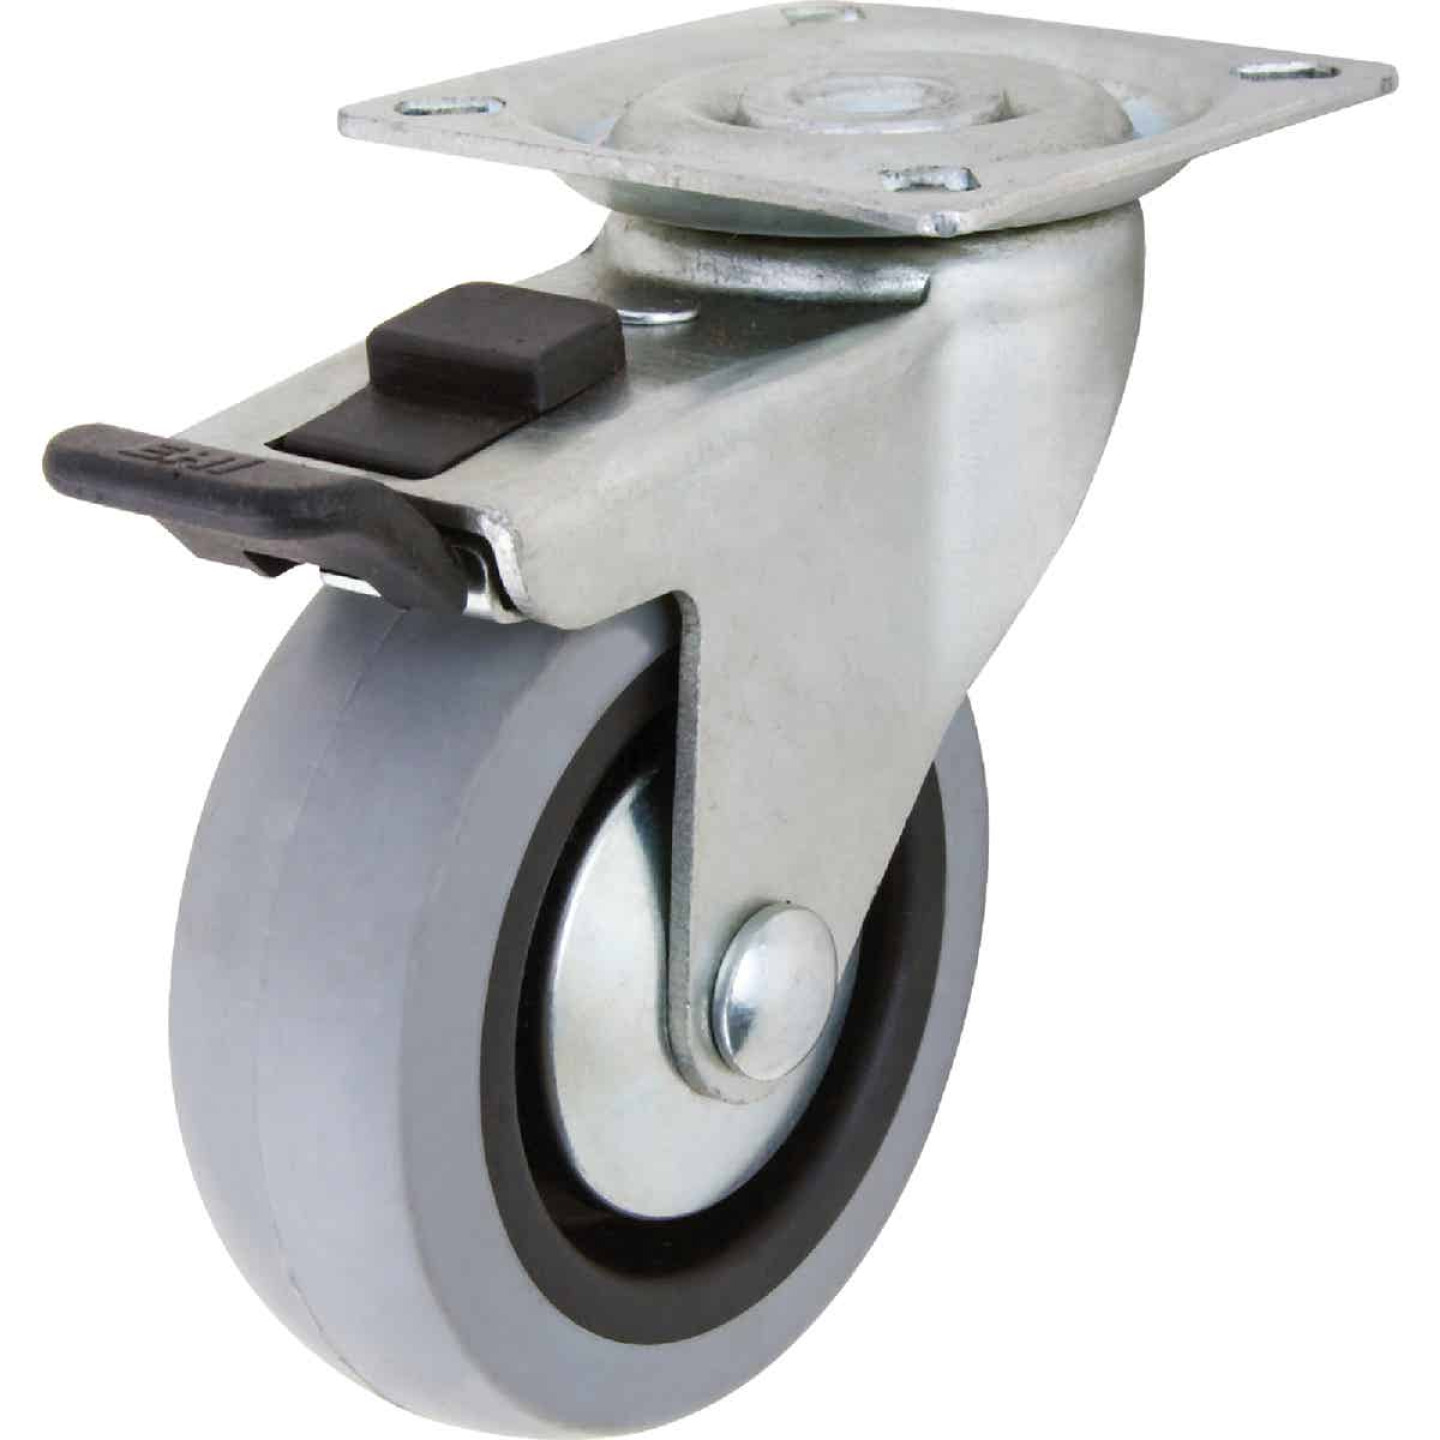 Shepherd 3 In. Thermoplastic Swivel Plate Caster with Brake Image 1